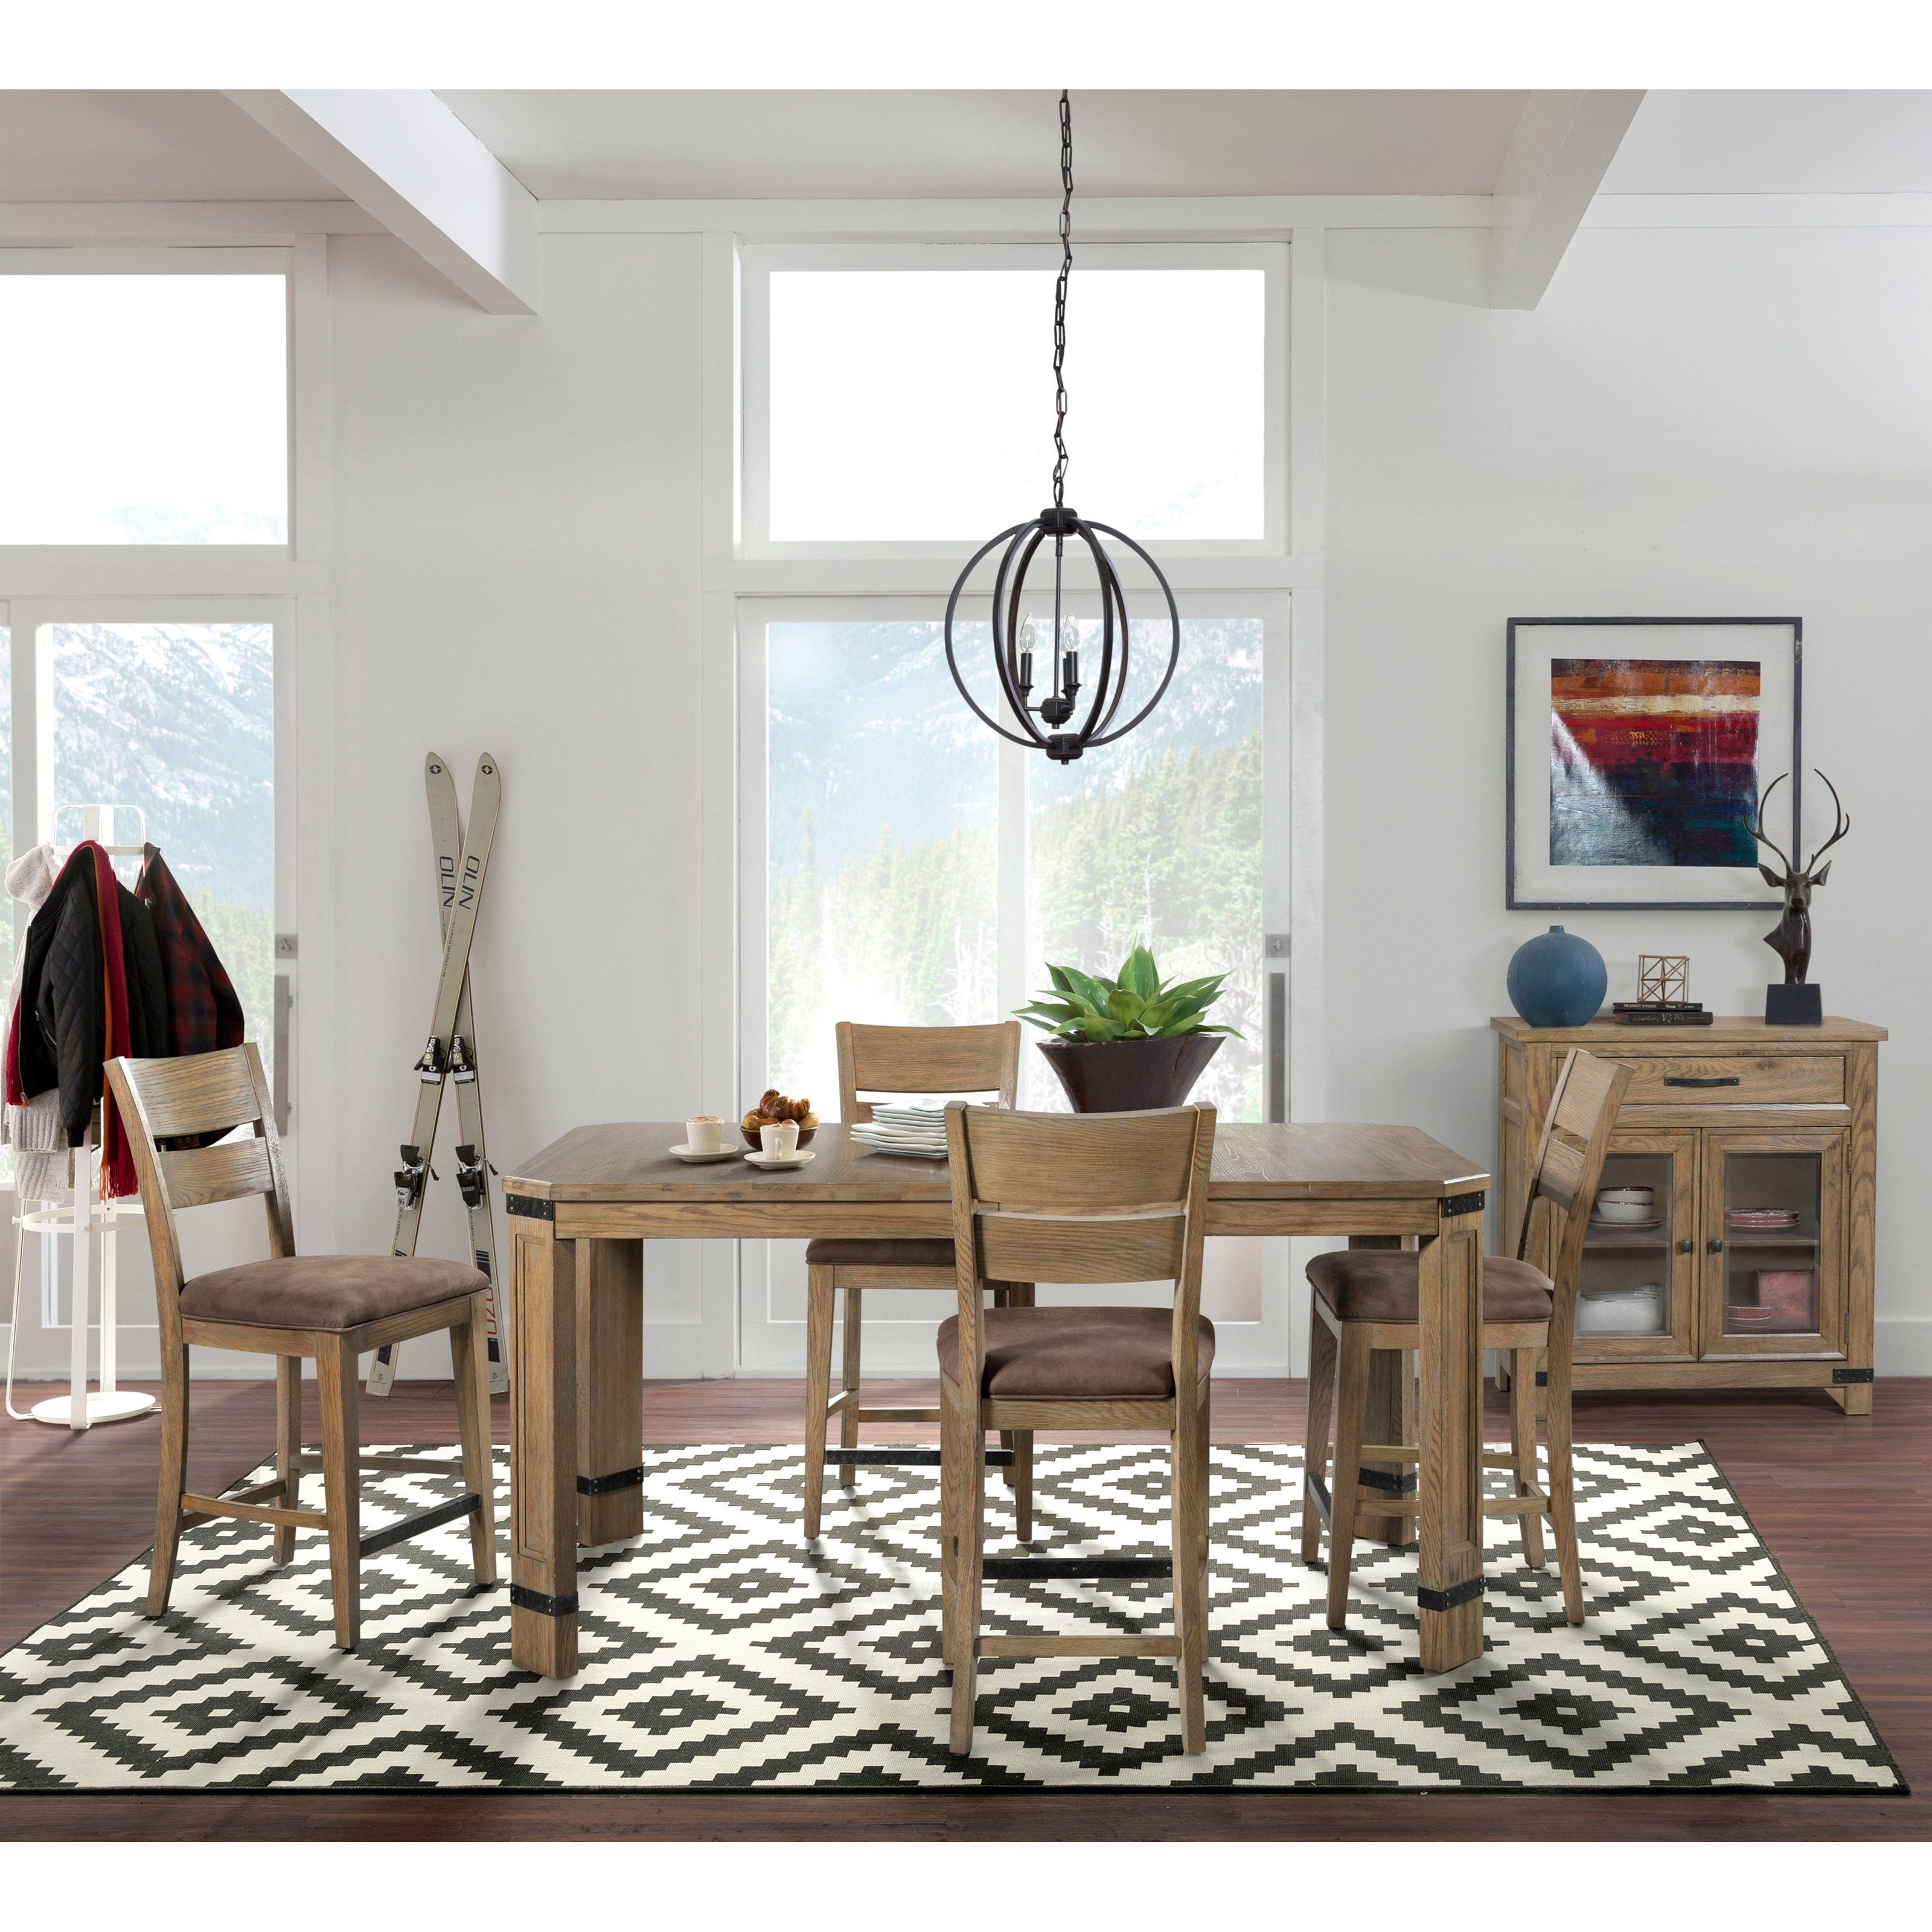 Broyhill Furniture Park City Casual Dining Room Group   Item Number: 4550 Dining  Room Group